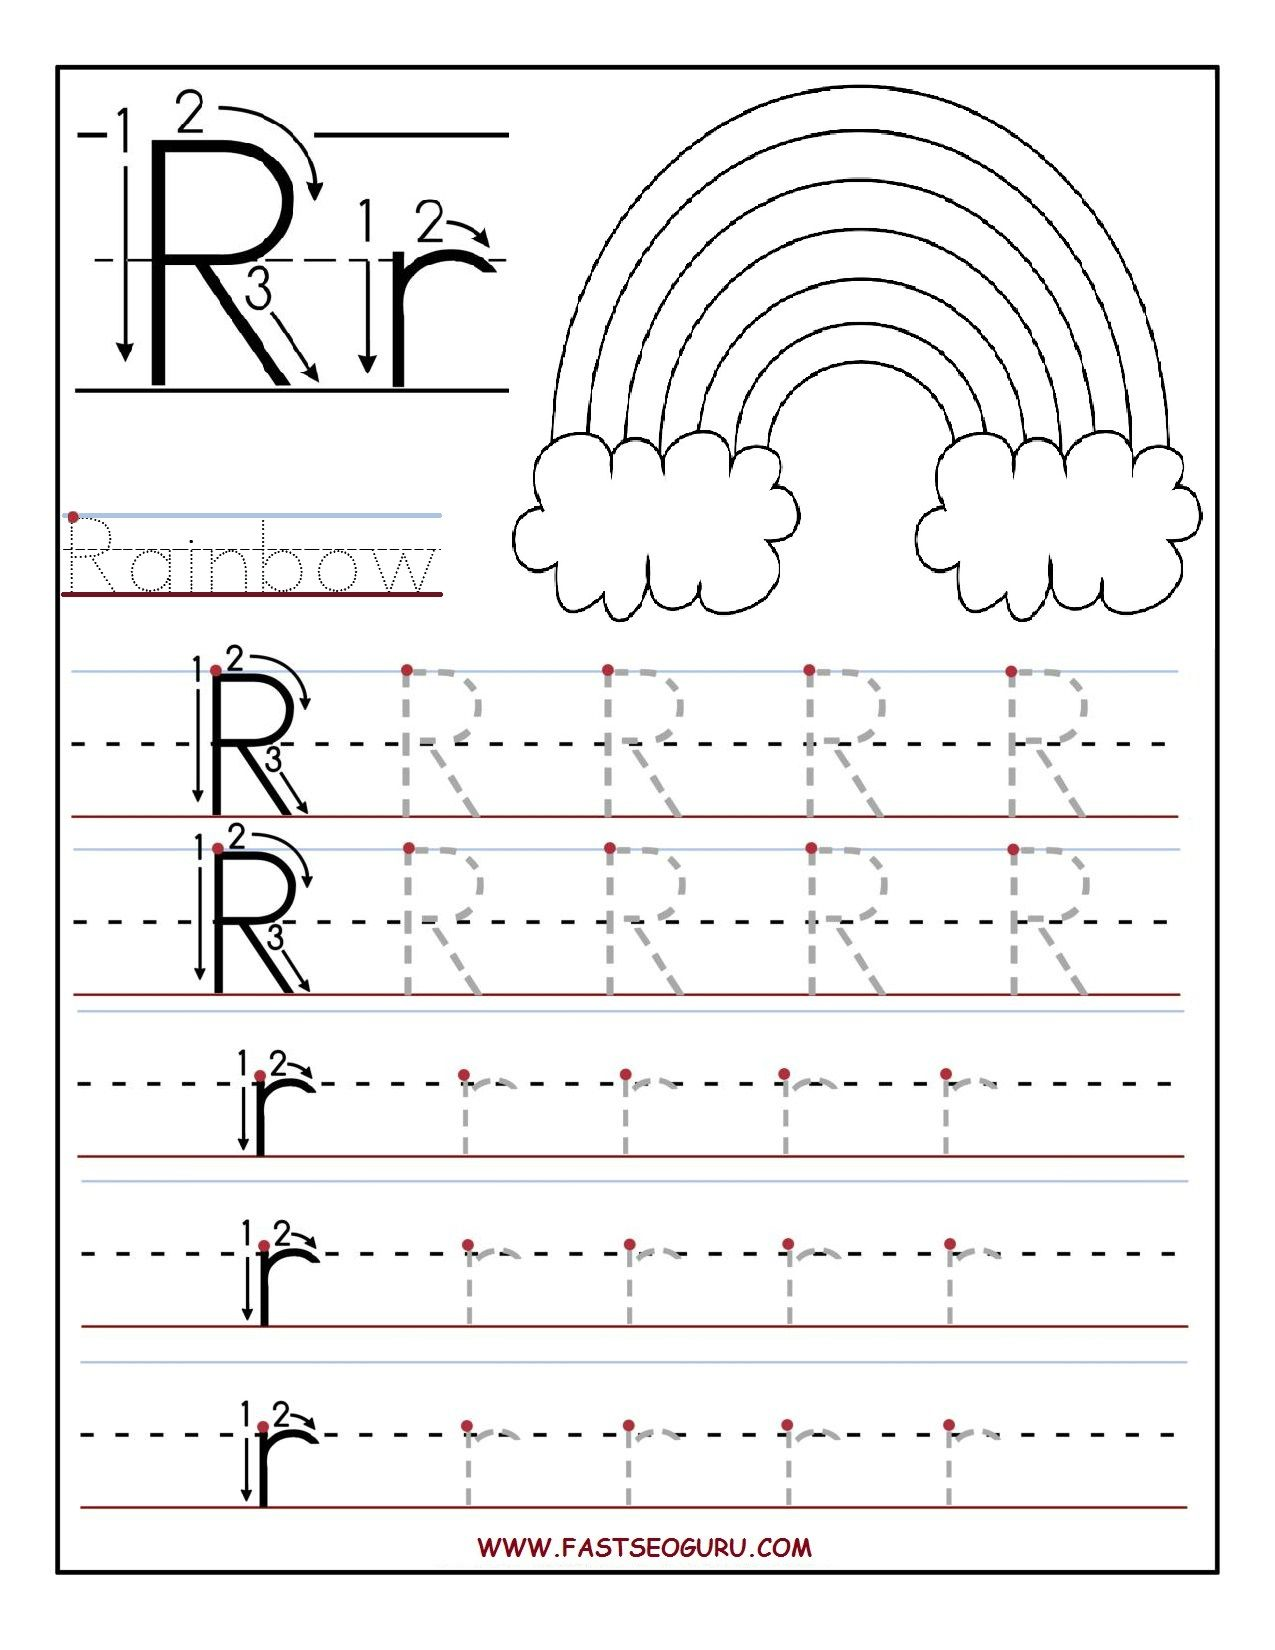 Printable Letter R Tracing Worksheets For Preschool With